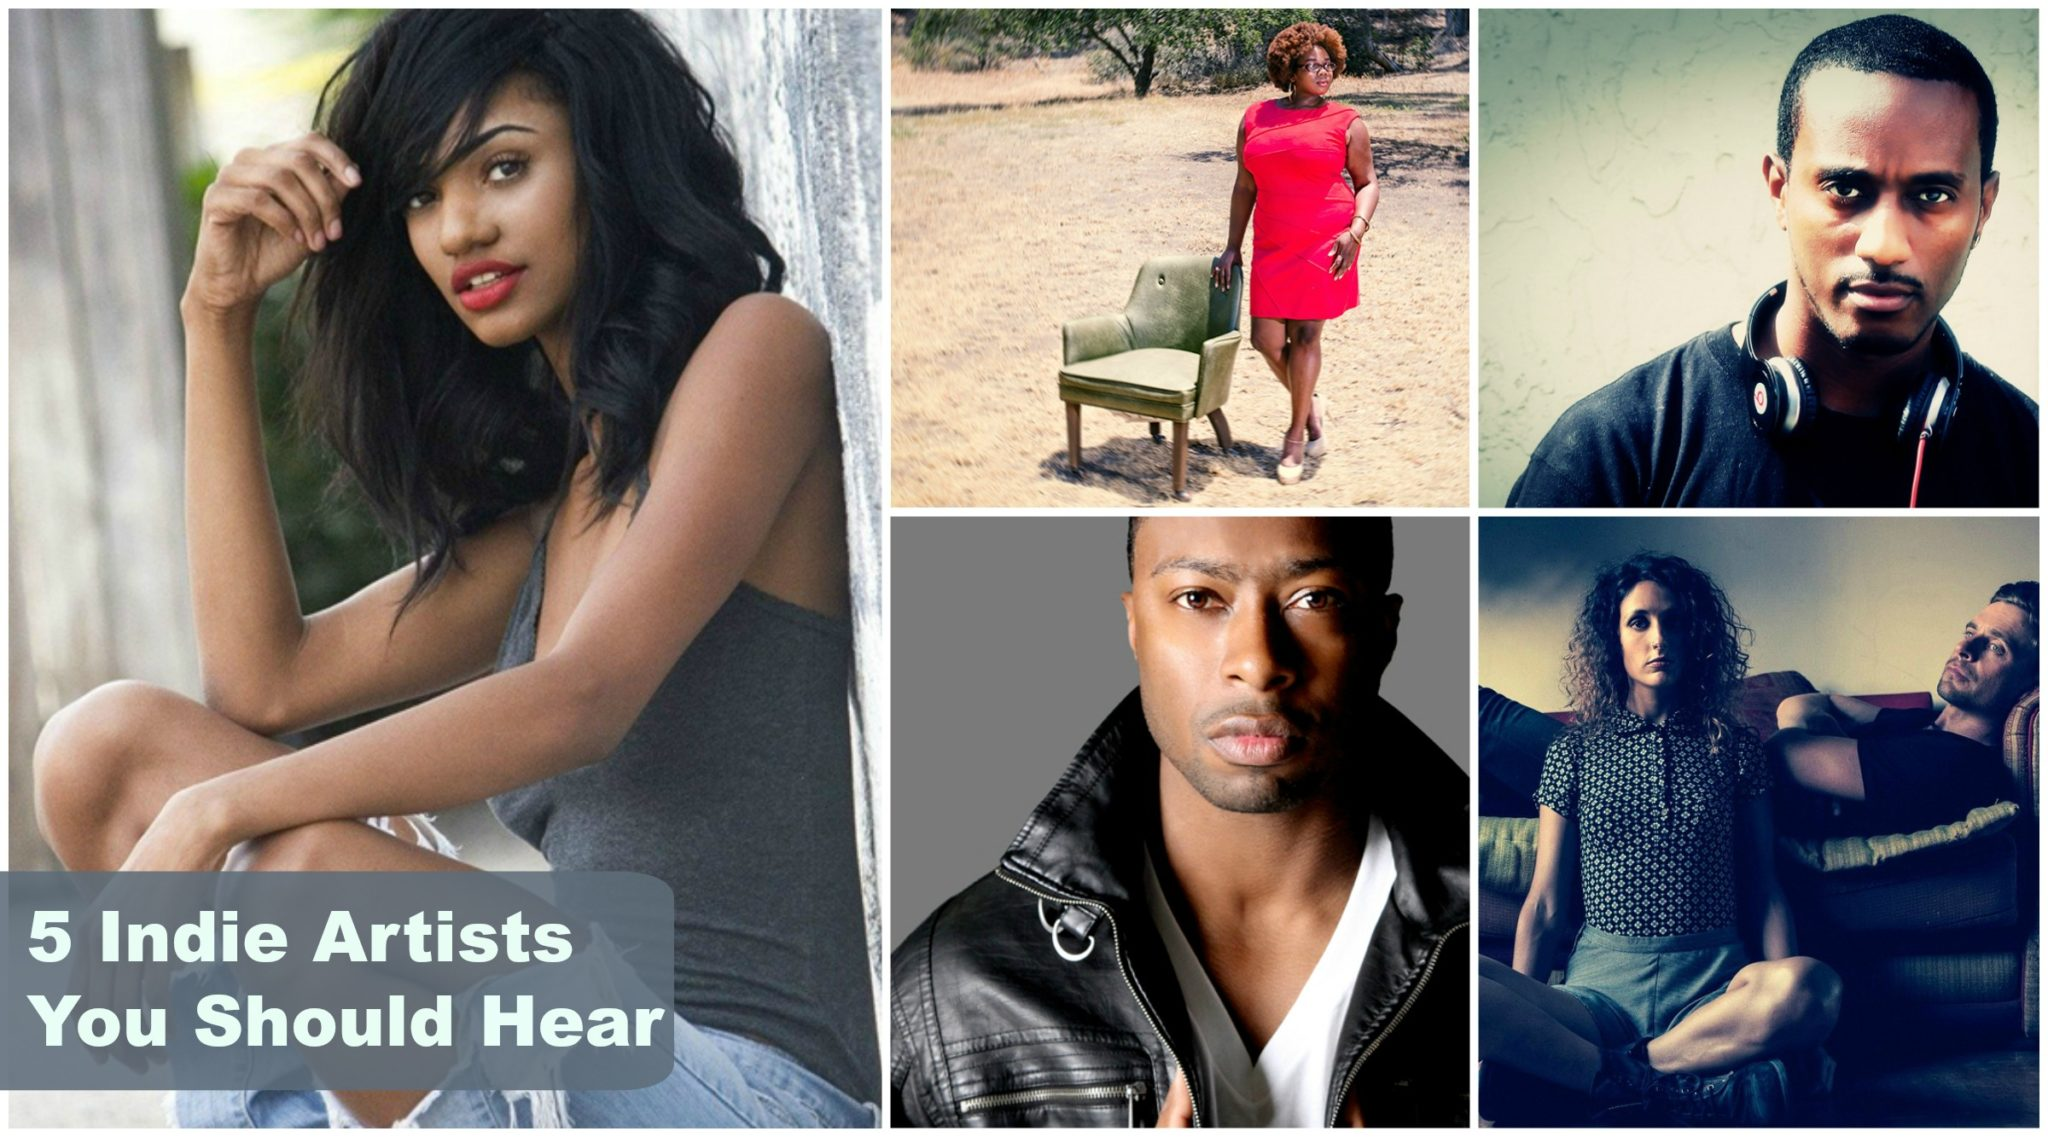 5 Indie Artists You Should Hear December 2014